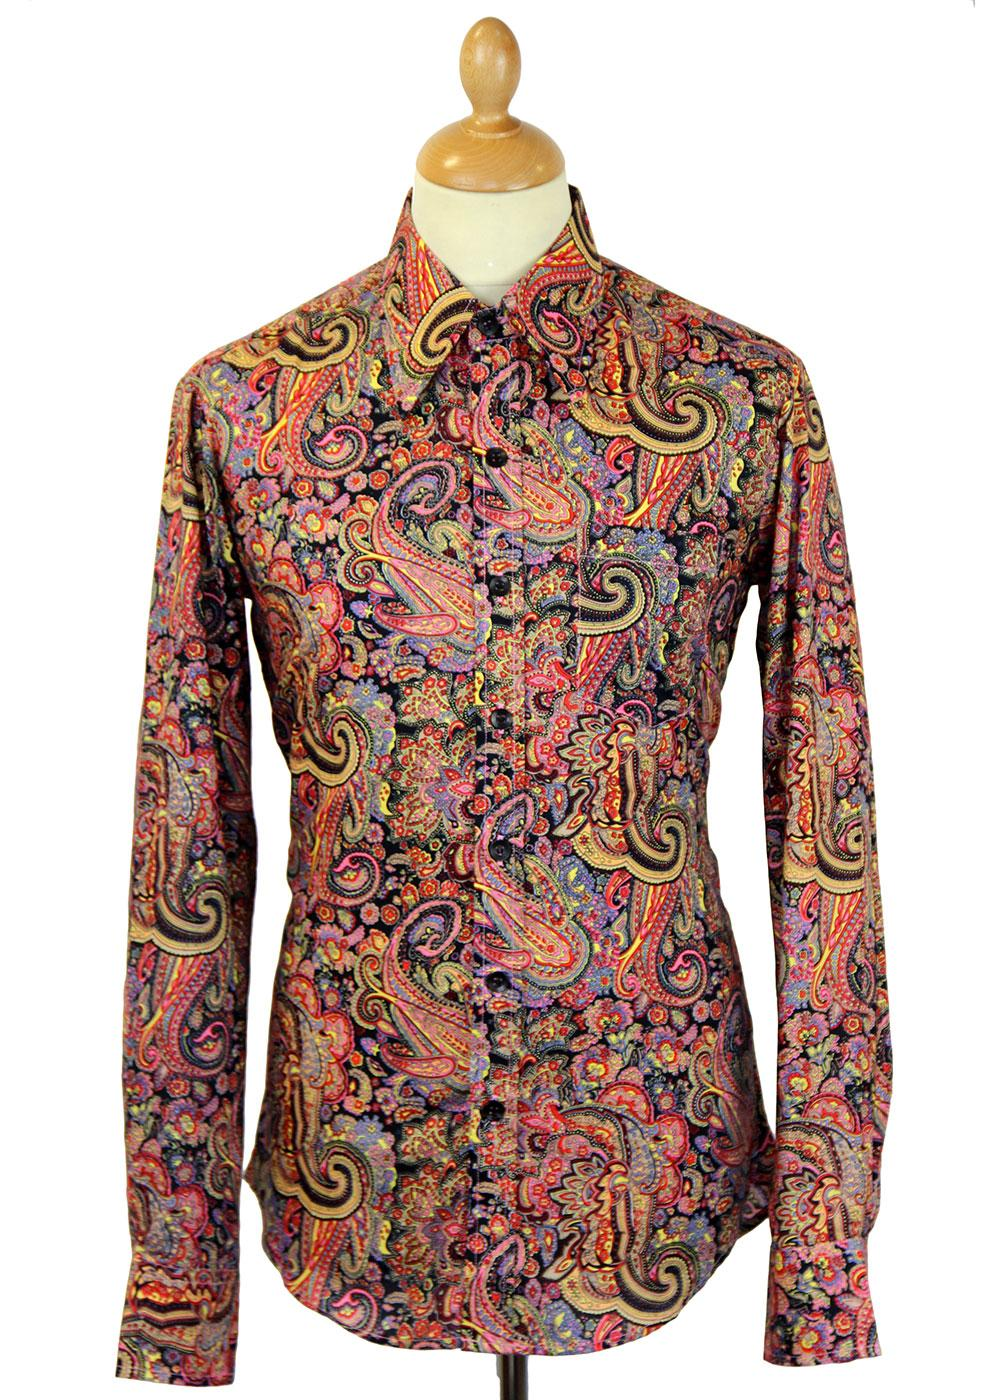 Motley Paisley CHENASKI Retro Mod Big Collar Shirt